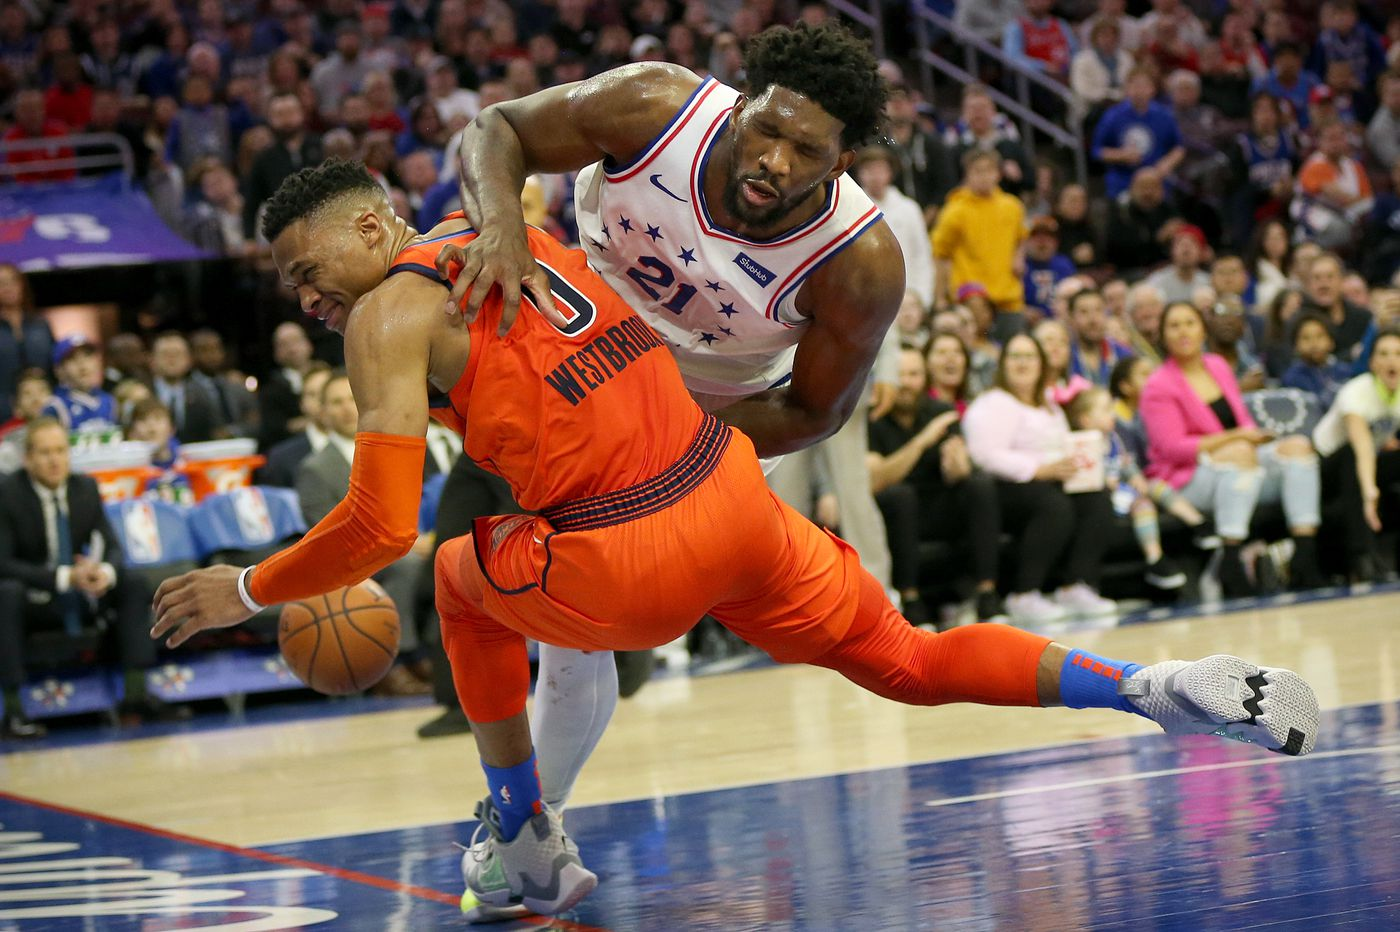 Sixers-Thunder observations, best and worst awards: Joel Embiid's and Russell Westbrook's friction, Furkan Korkmaz's shrinking role